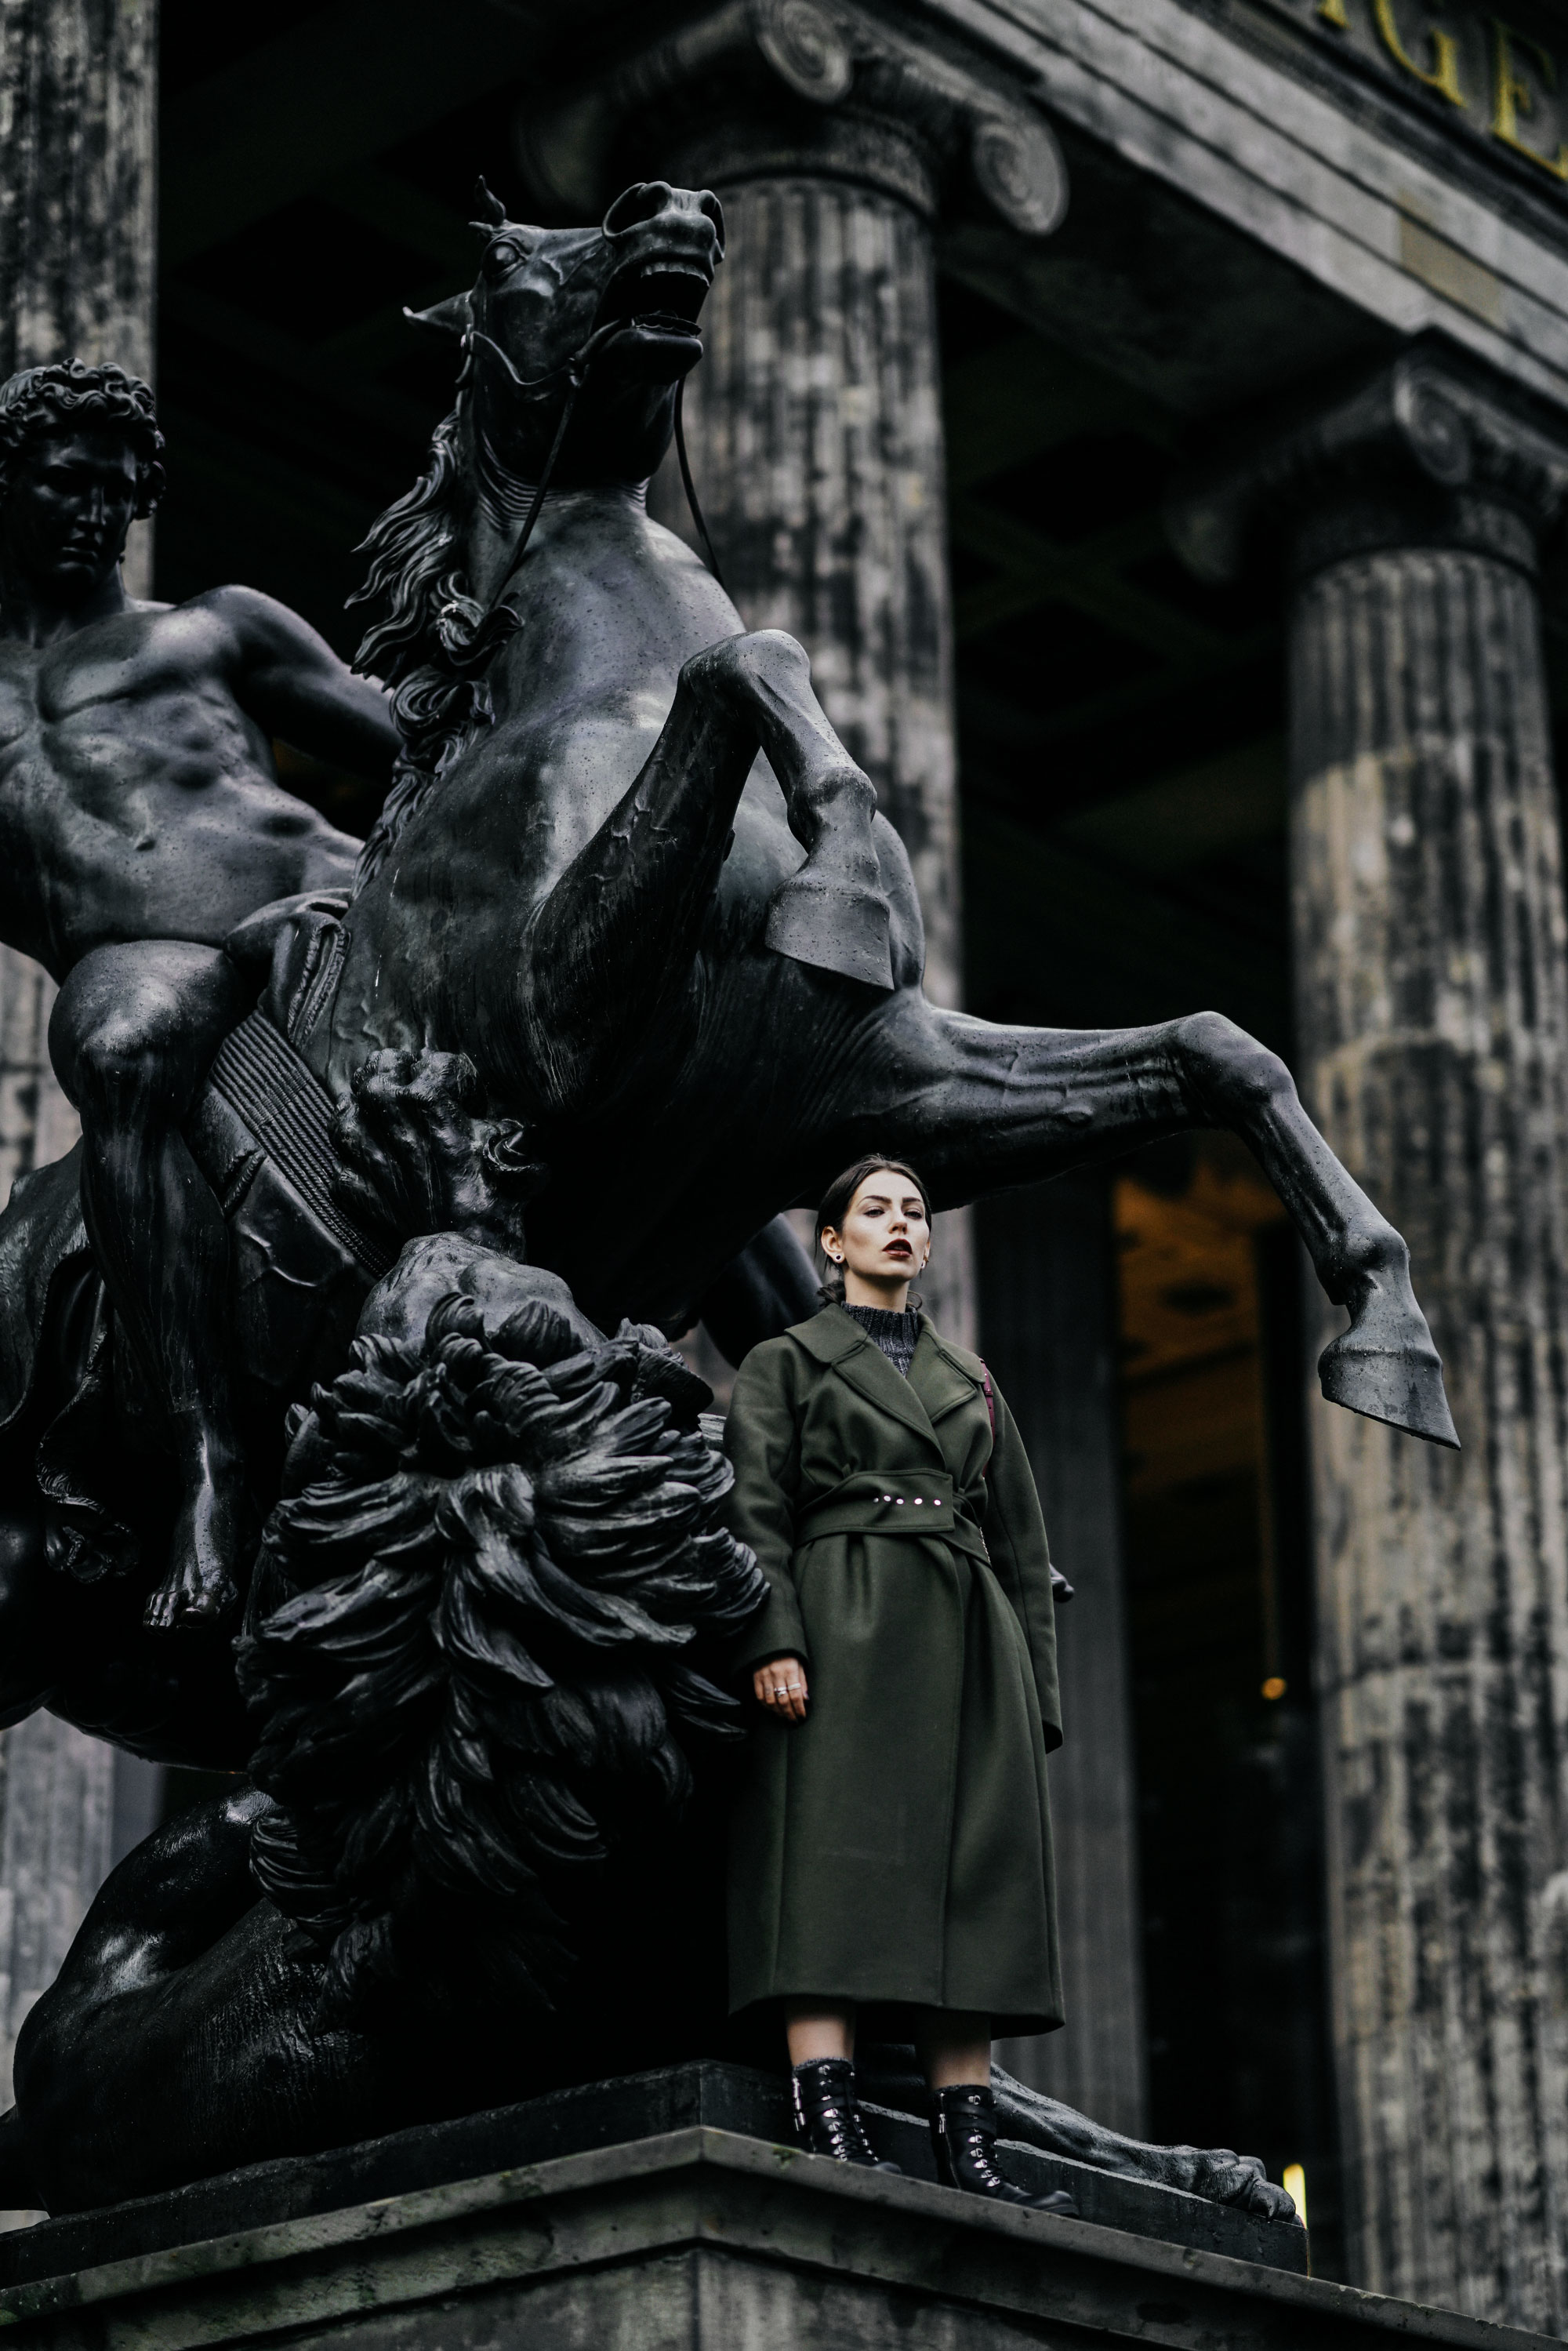 Editorial Shooting in Berlin | Lustgarten | style: epic, dark, winter, goth